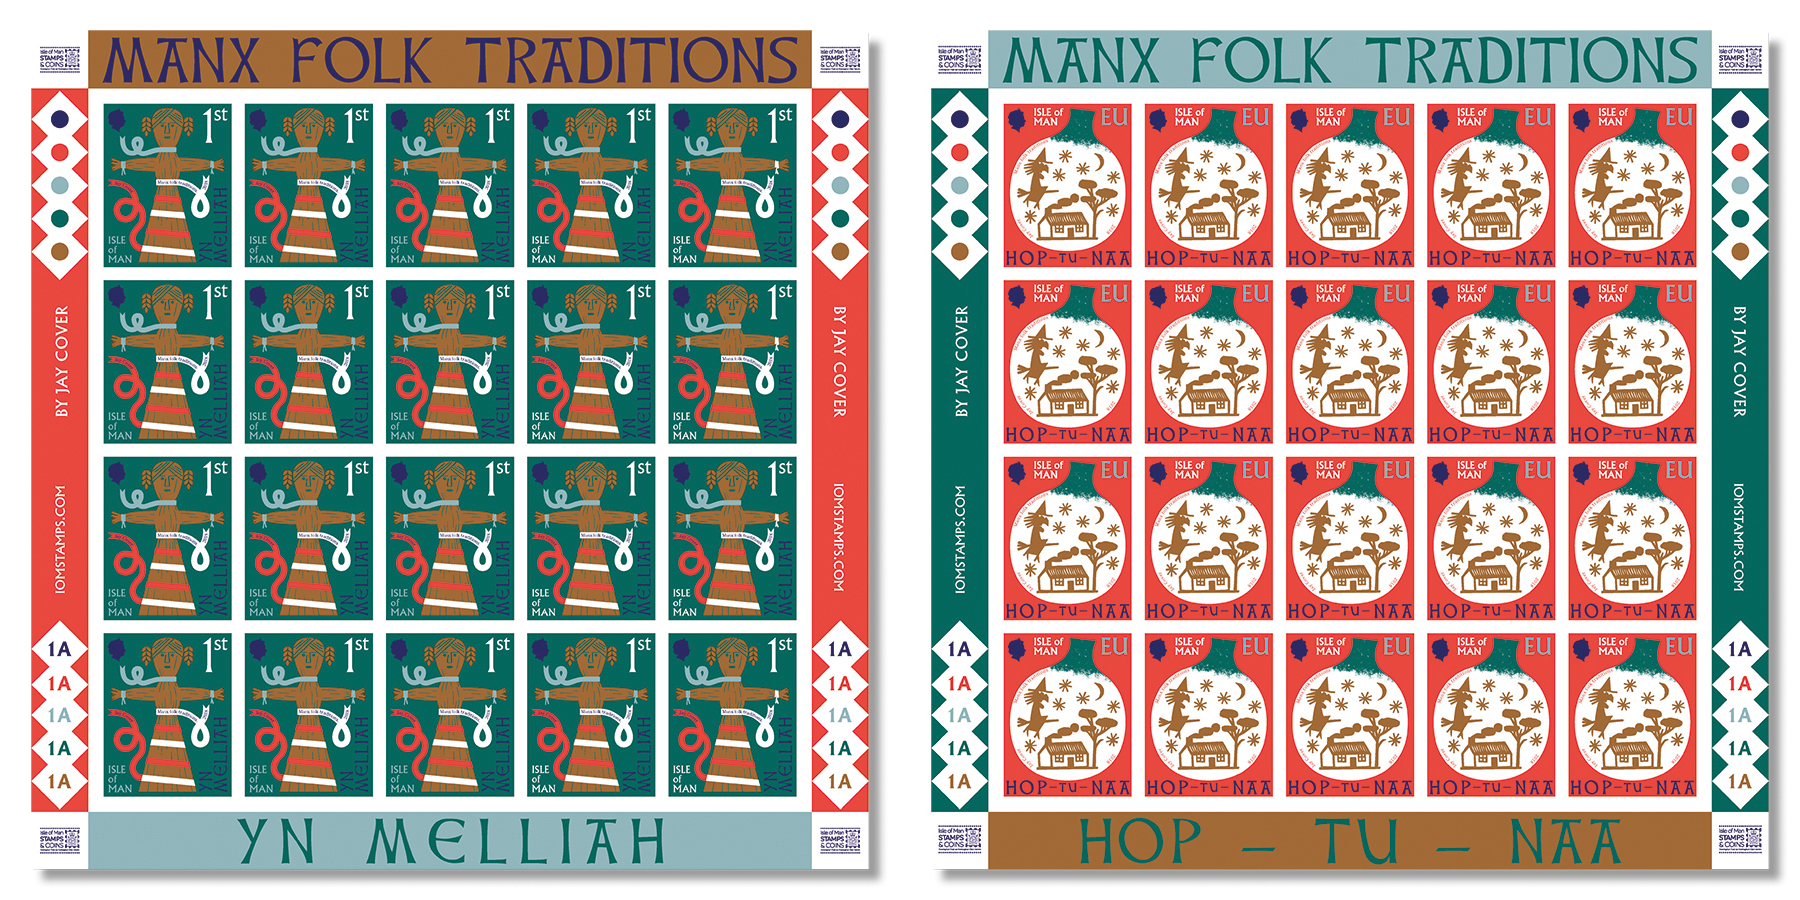 Manx Folk Traditions